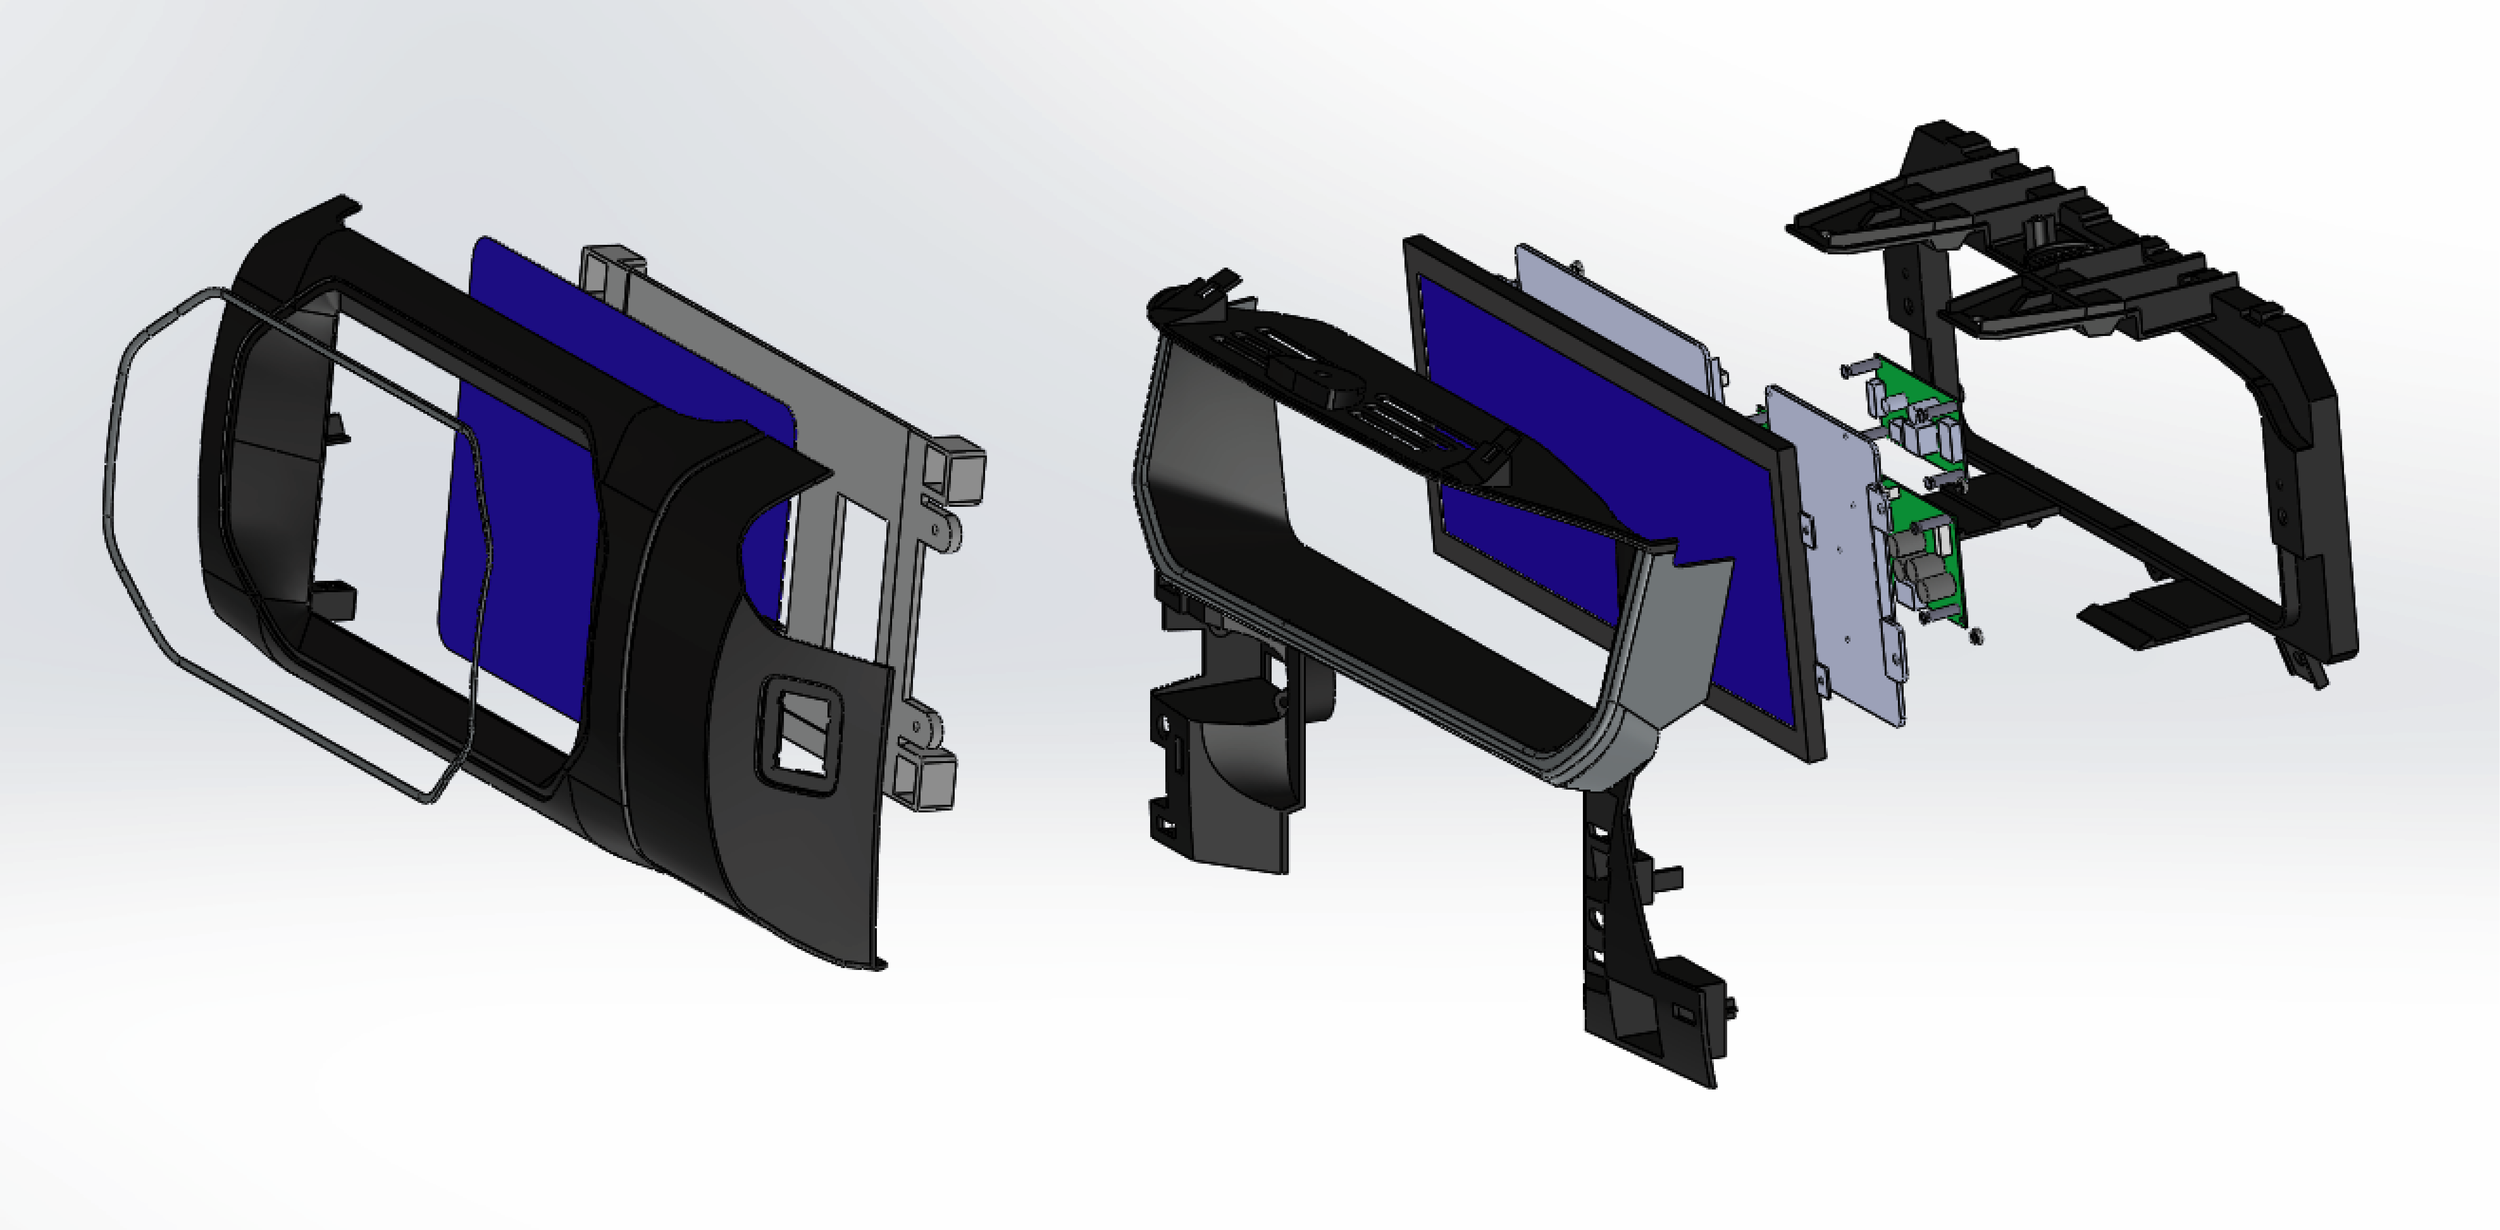 CAD - Using surface and solid modelling in Solidworks, the new parts were created. Existing parts such as the screens and PCBs were placed in the assembly to ensure everything fit properly.